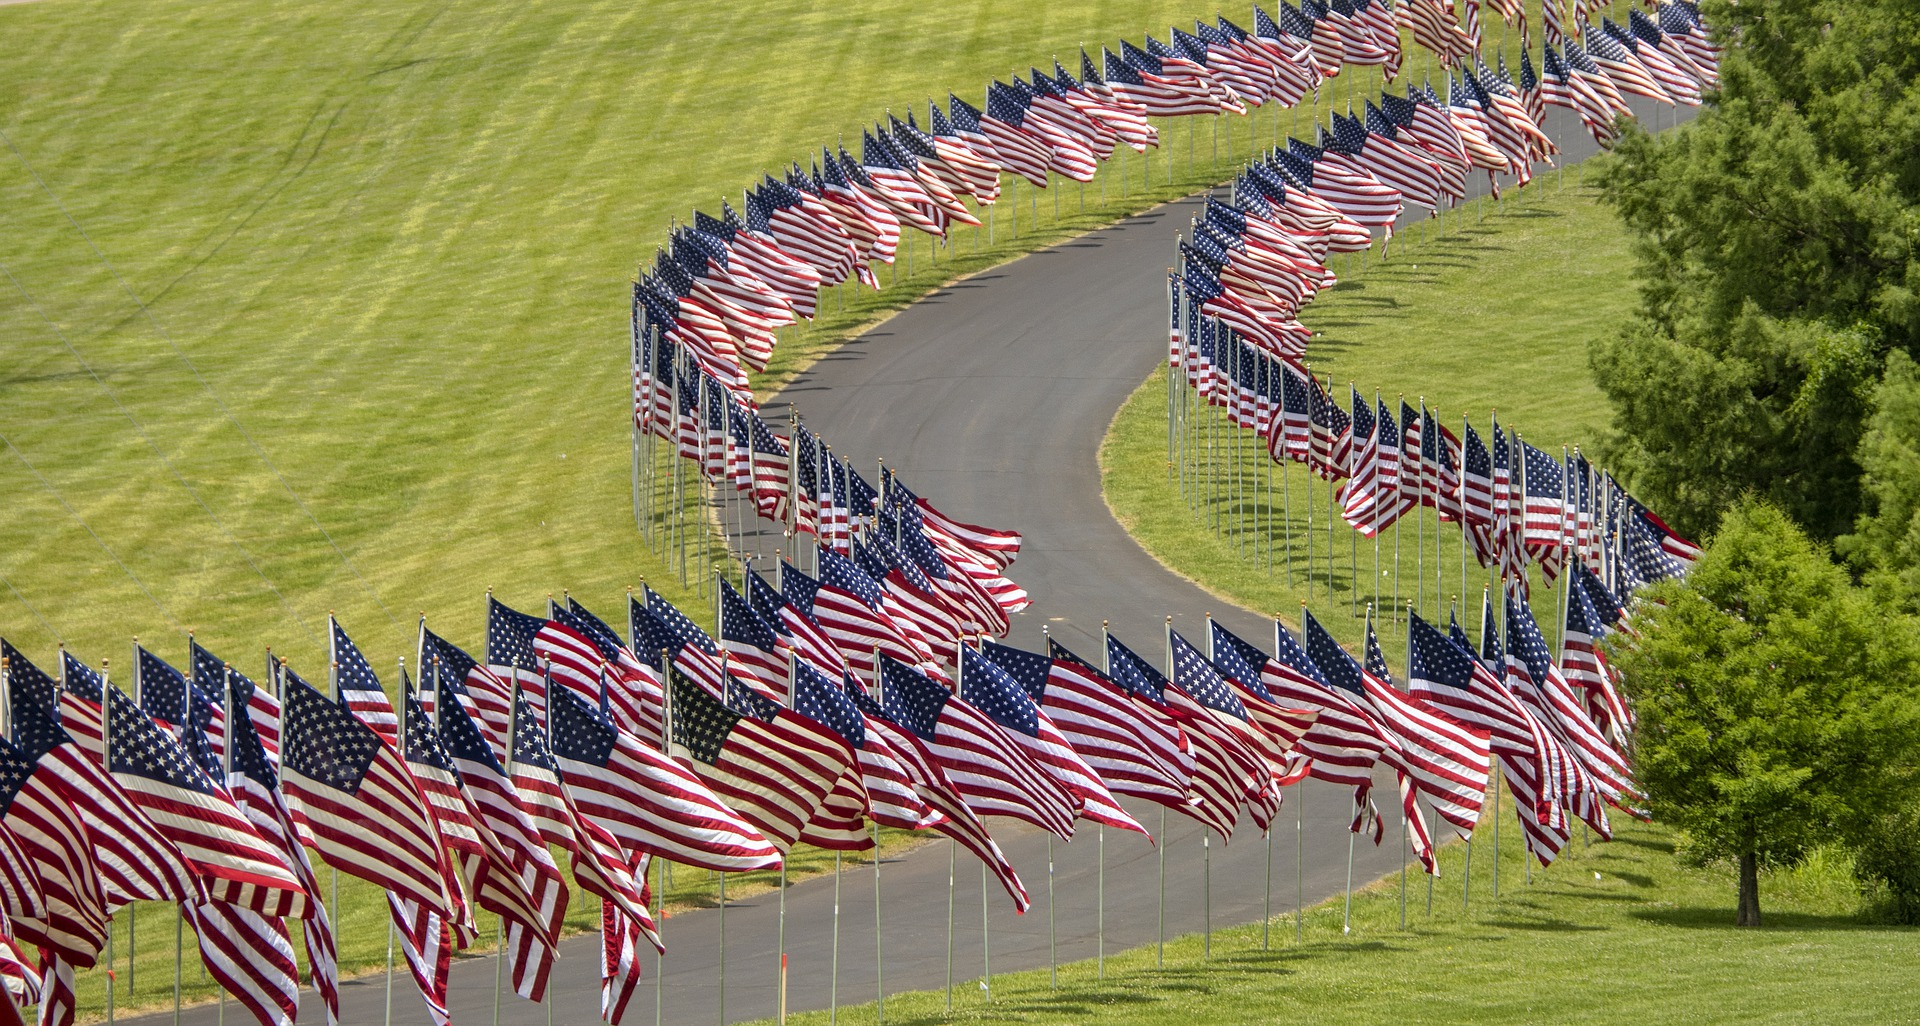 flags-United States